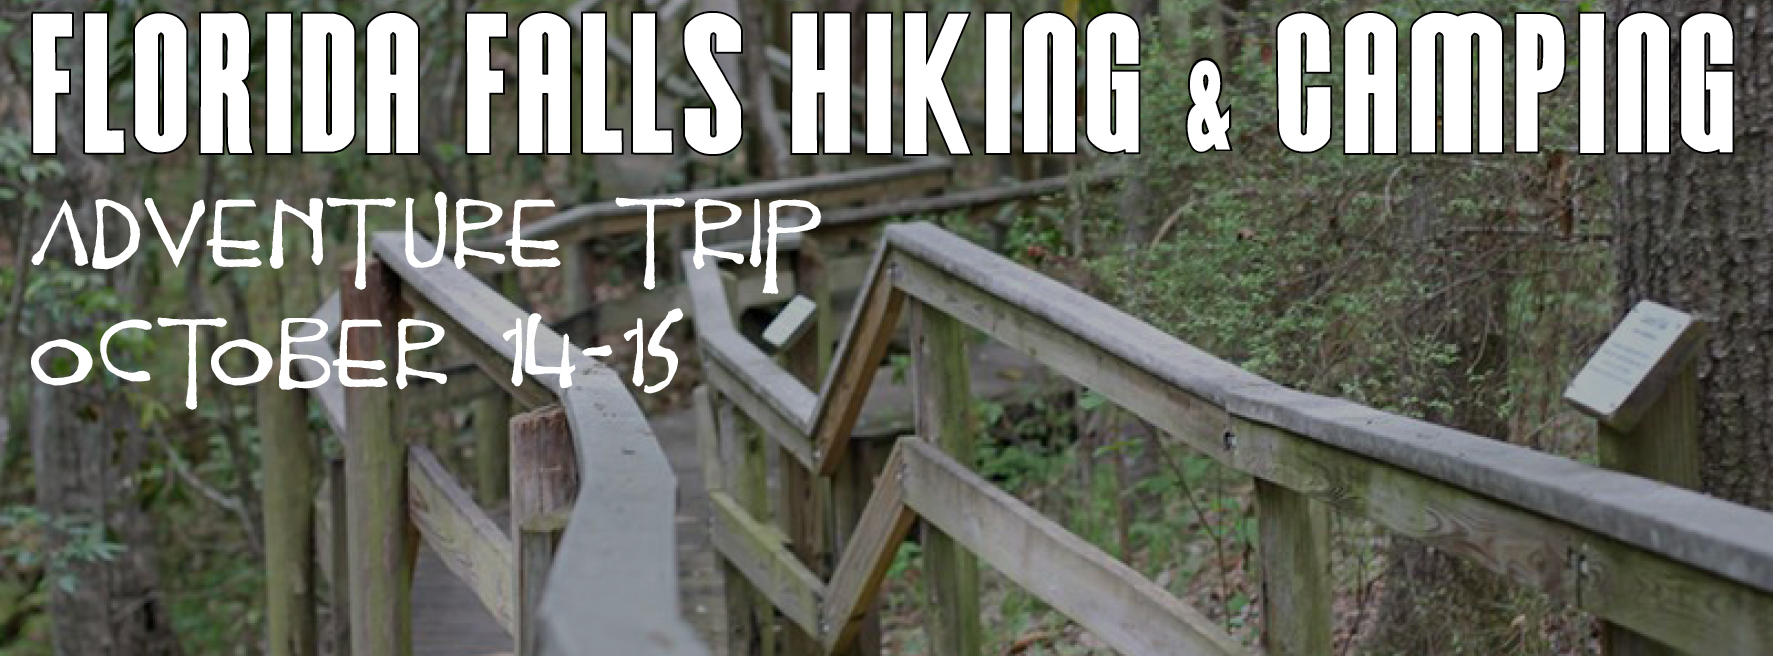 florida falls hiking and caving adventure trip